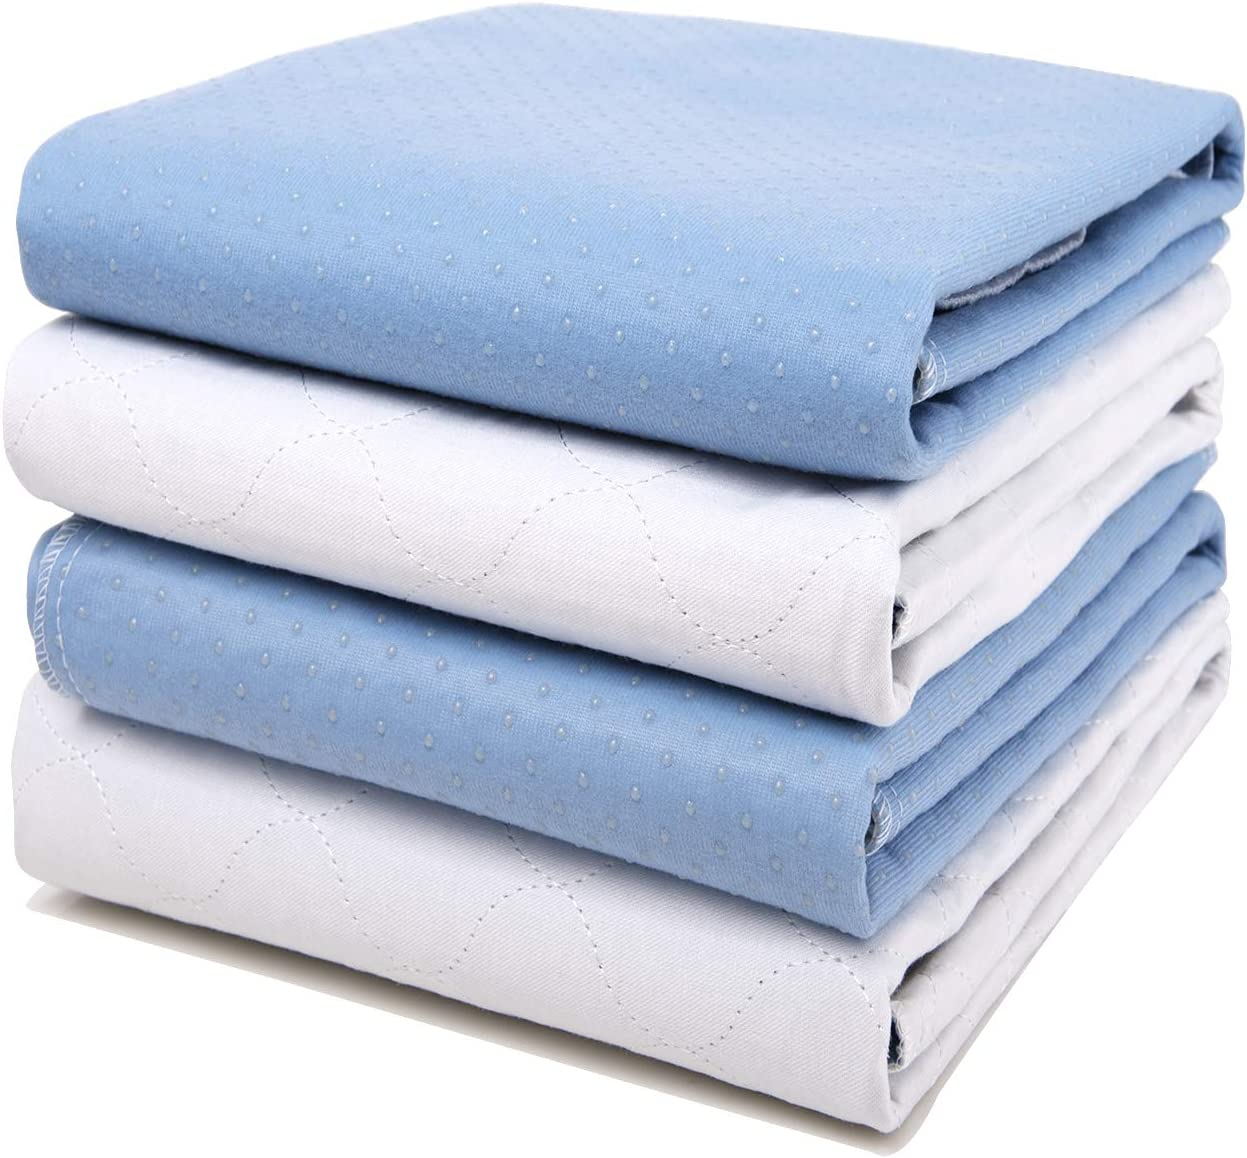 """4 Pack Bed Pads for Incontinence Washable 34"""" x 36"""",Waterproof Bed Pads,Adult Washable Incontinence Bed Pads for Adults,Dog,Kids: Health & Personal Care"""